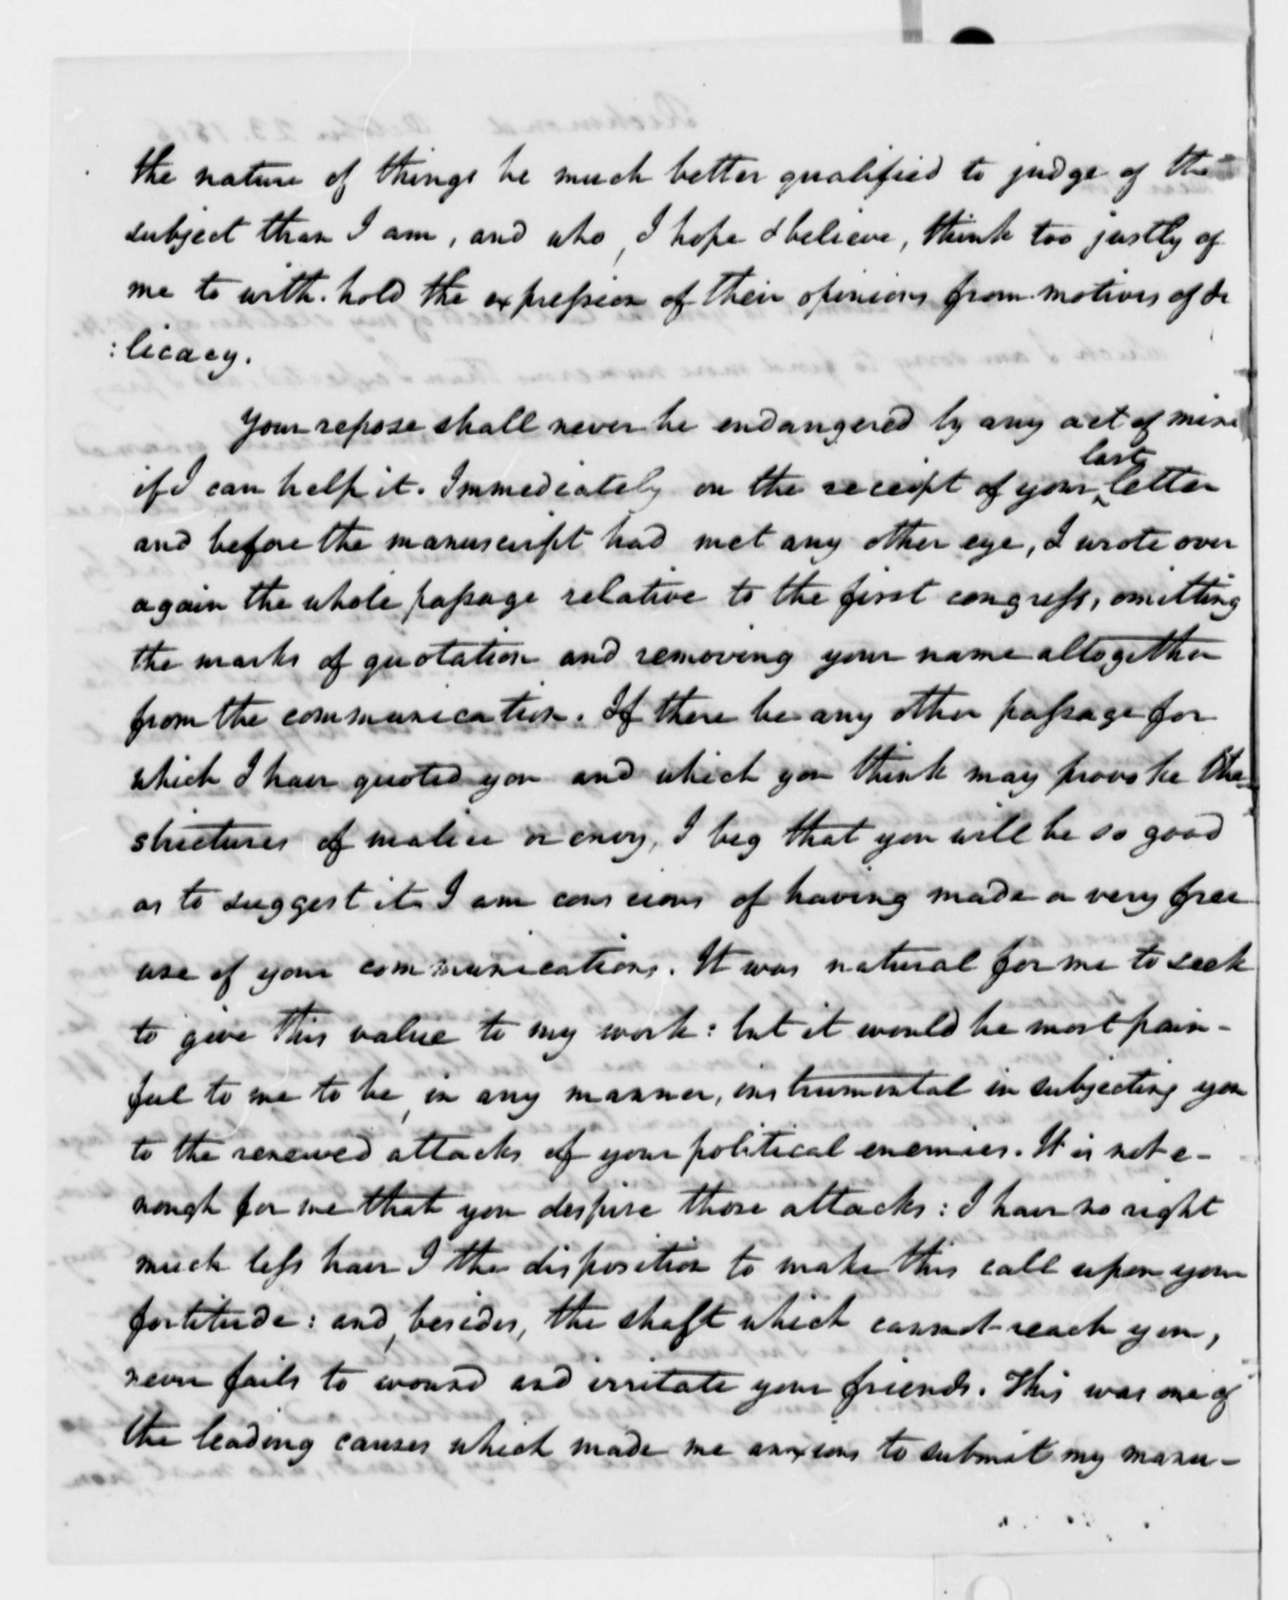 William Wirt to Thomas Jefferson, October 23, 1816